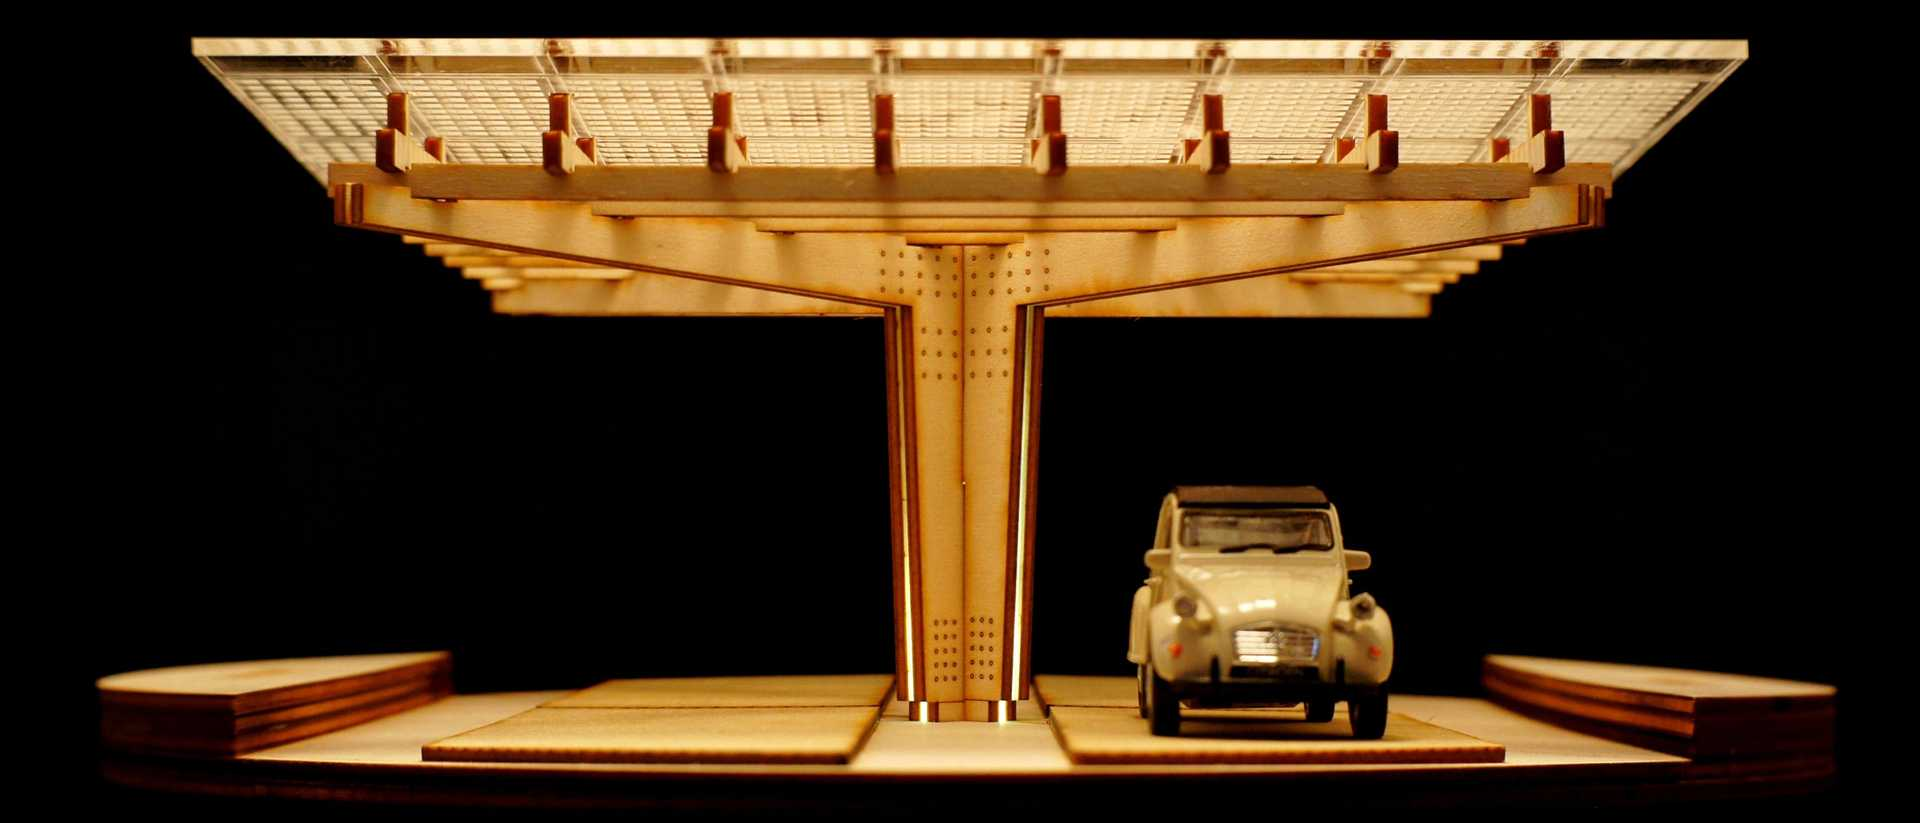 A miniature scaled development model of K:Port with a toy car.